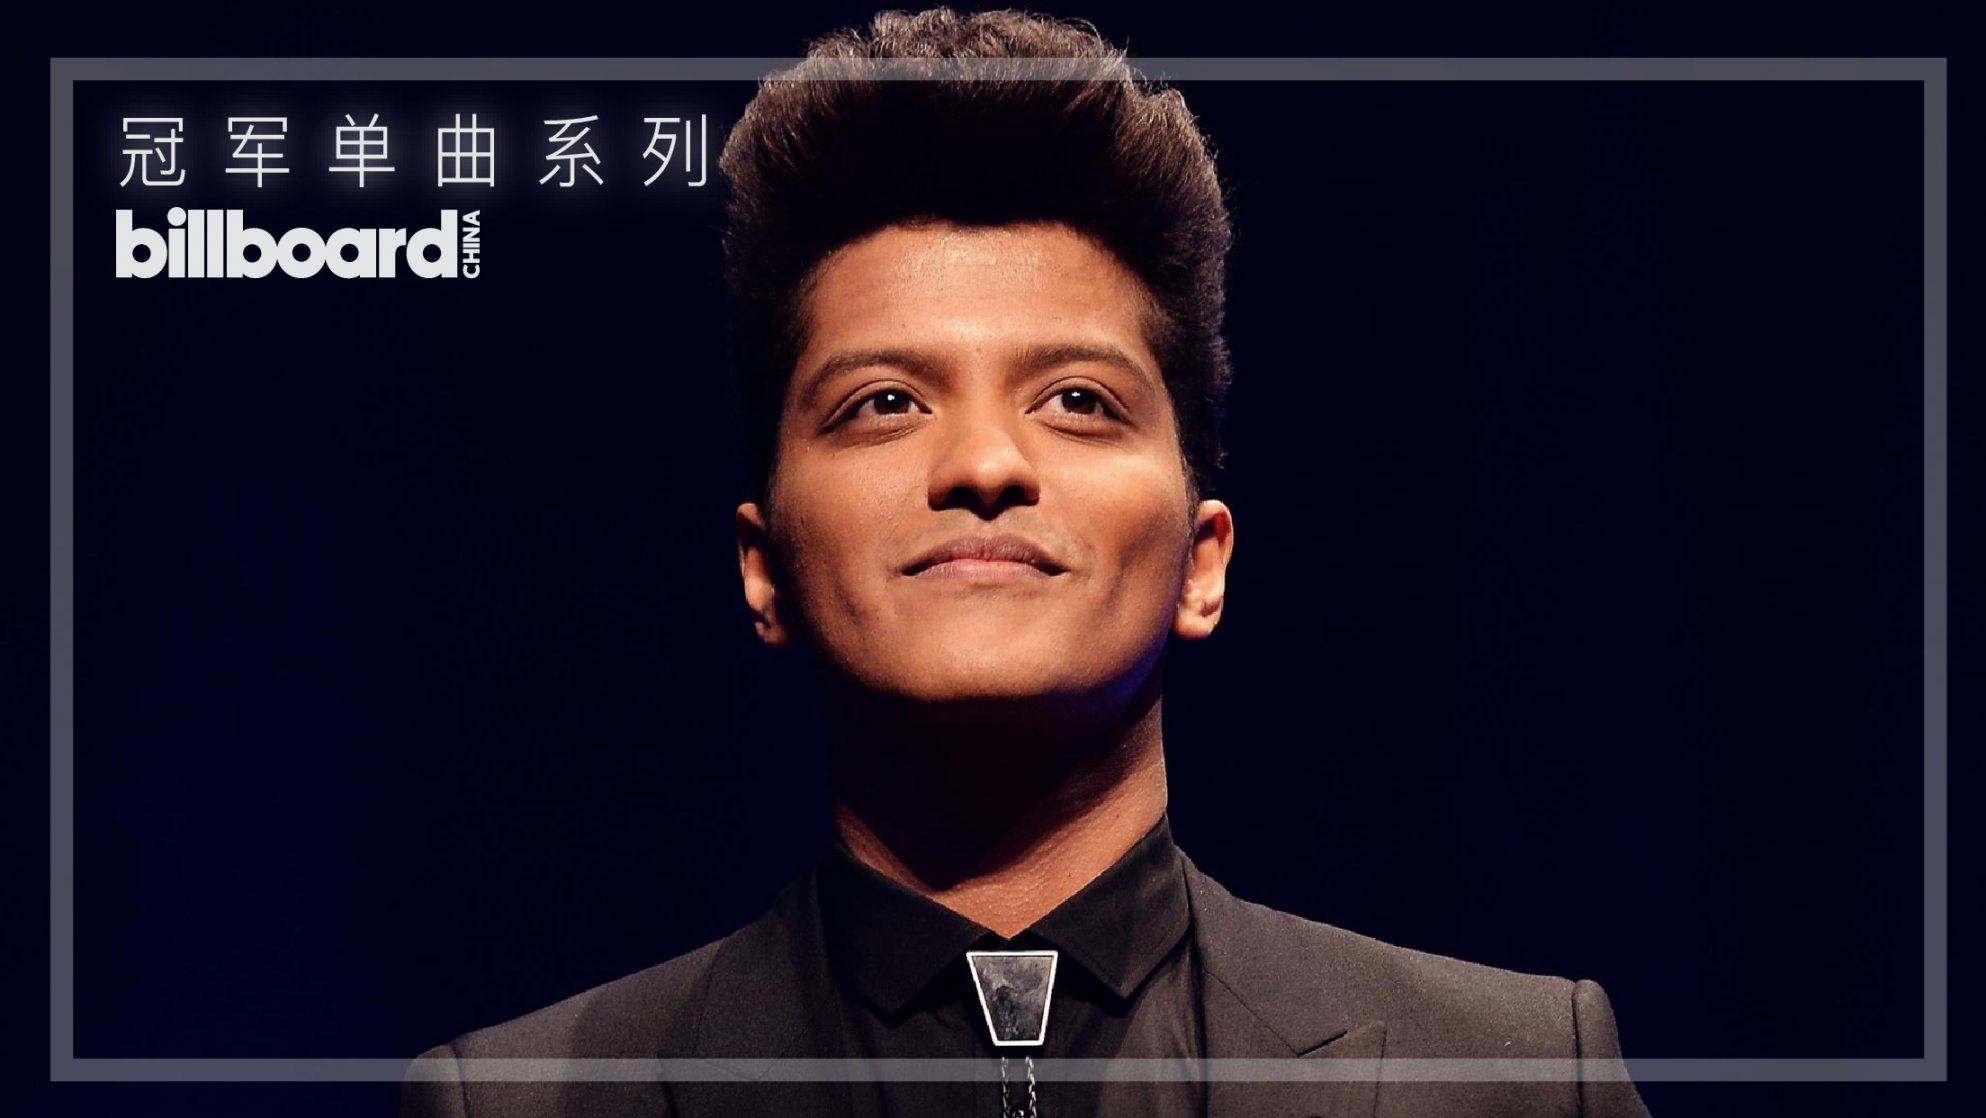 Bruno Mars《Just The Way You Are》——火星初撞地球时